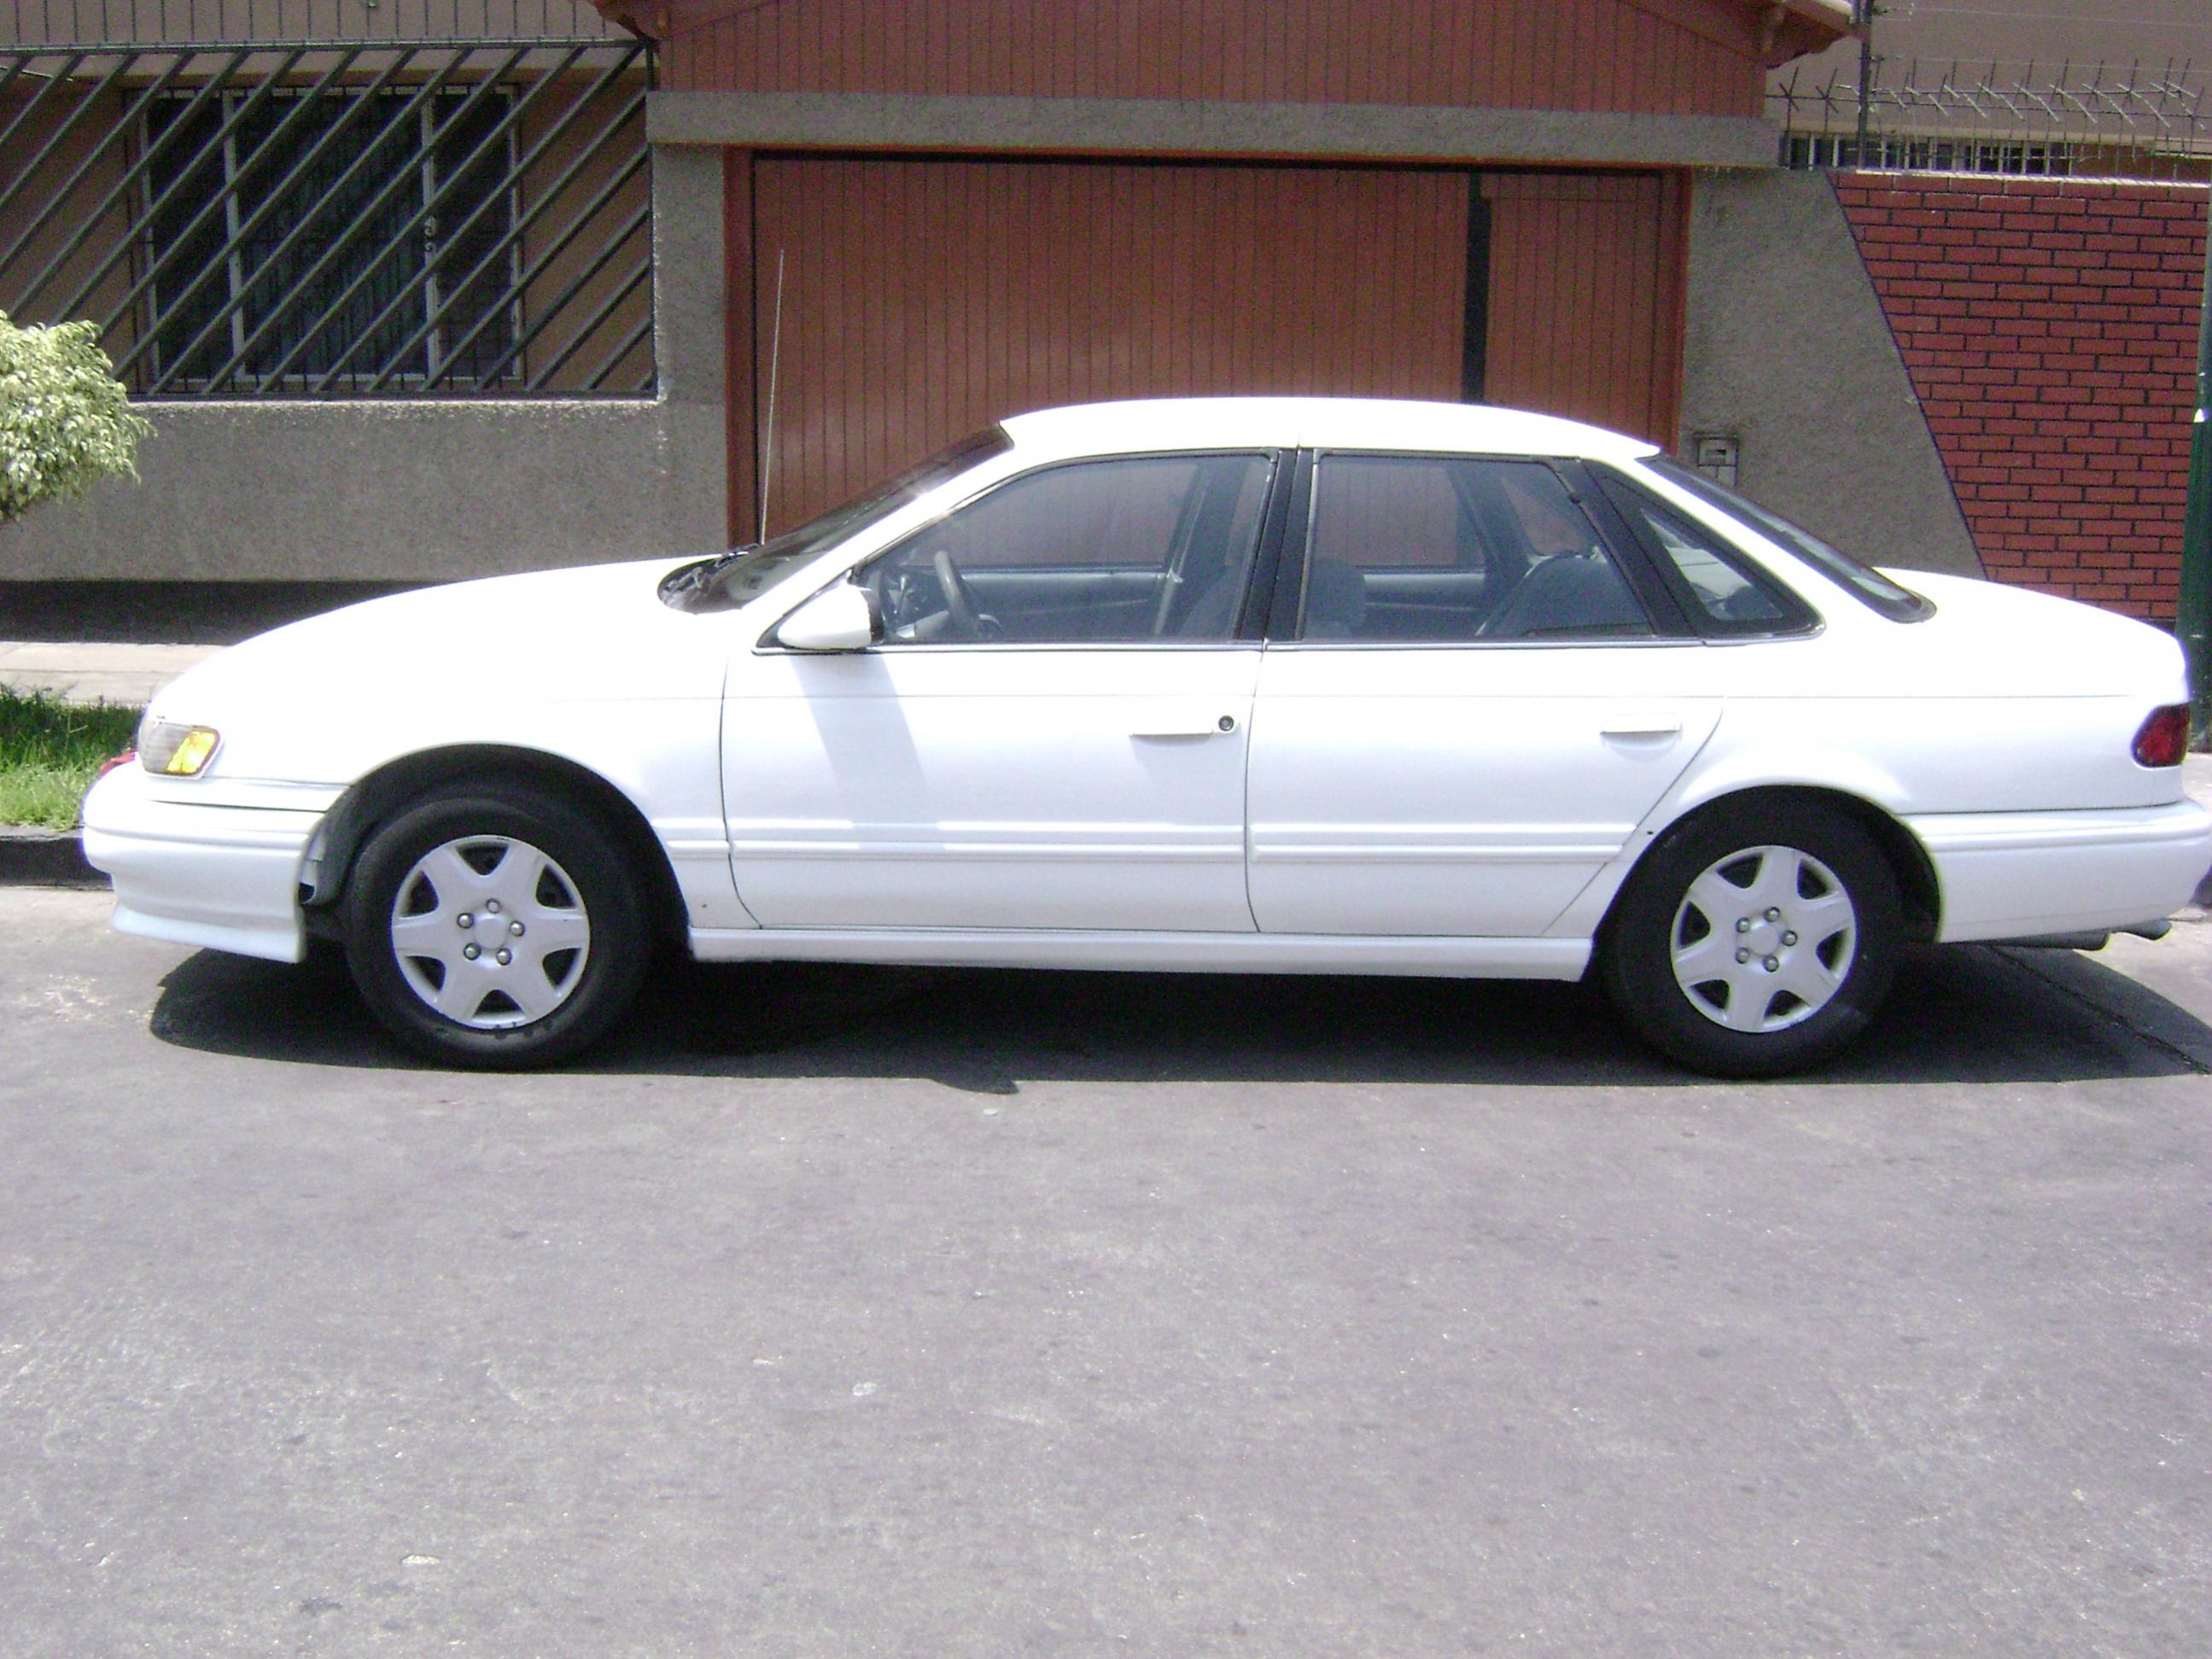 Ford taurus 1994 images 15